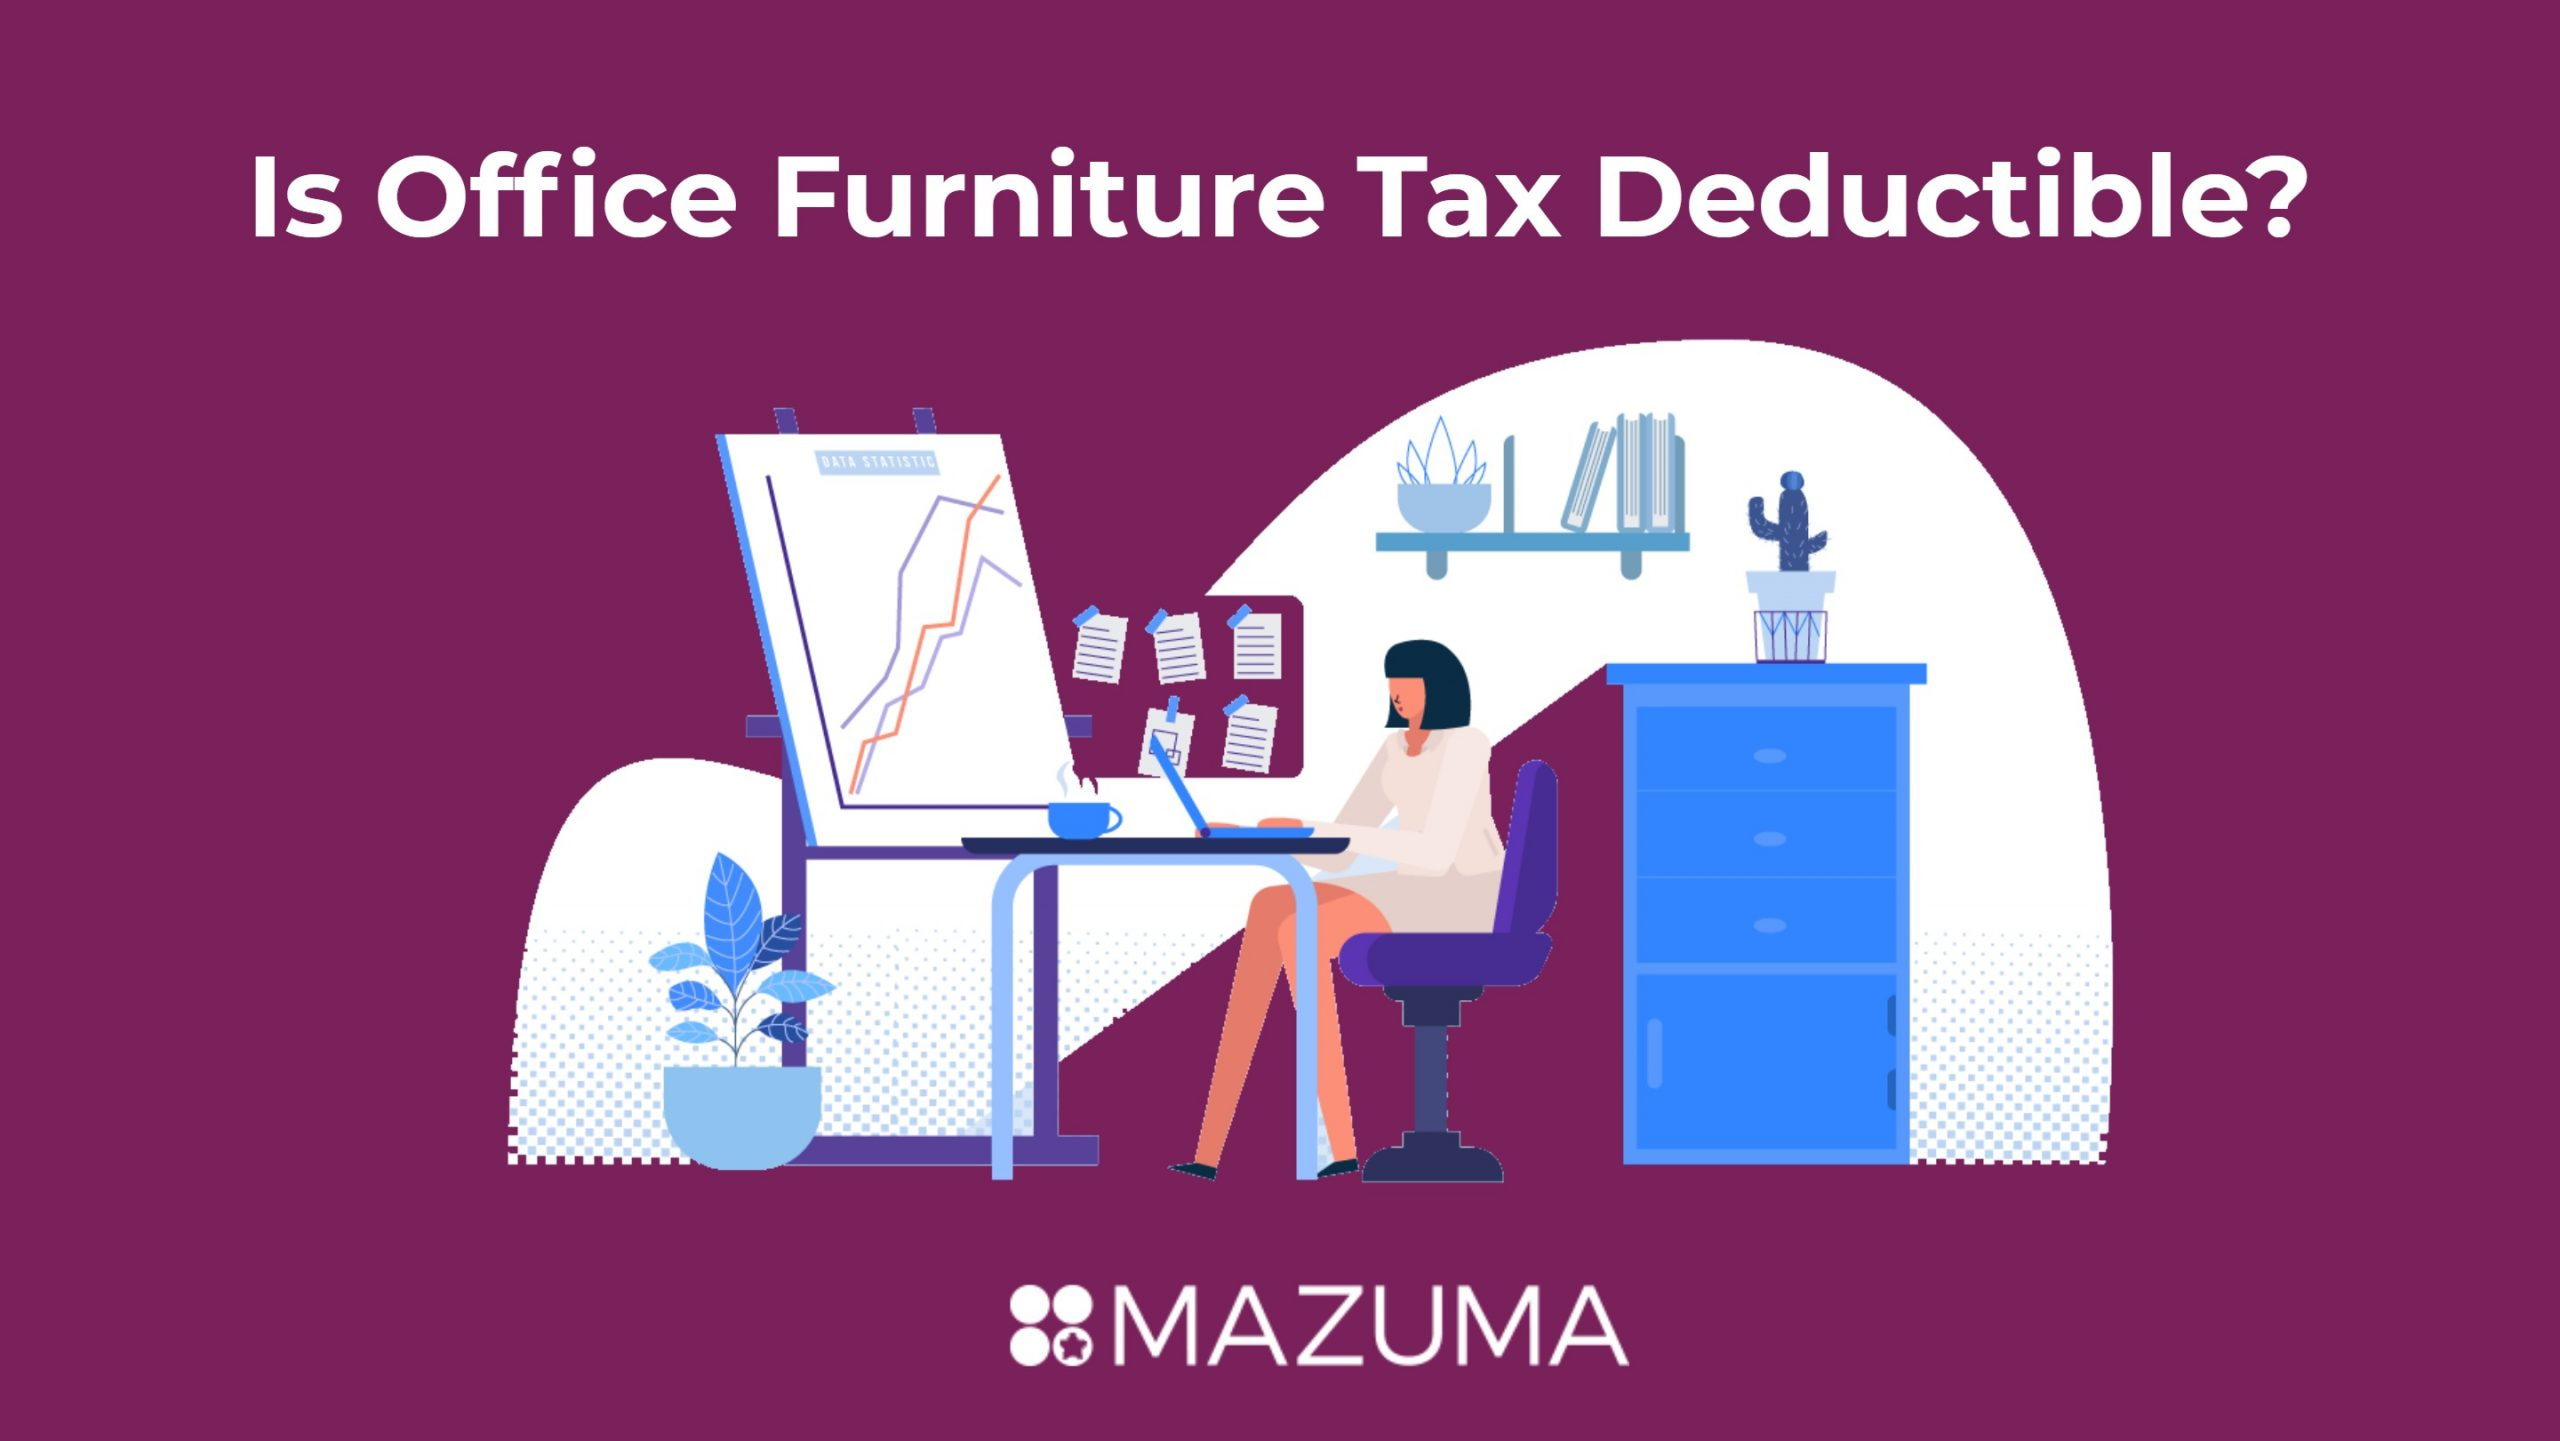 Is office furniture tax deductible?